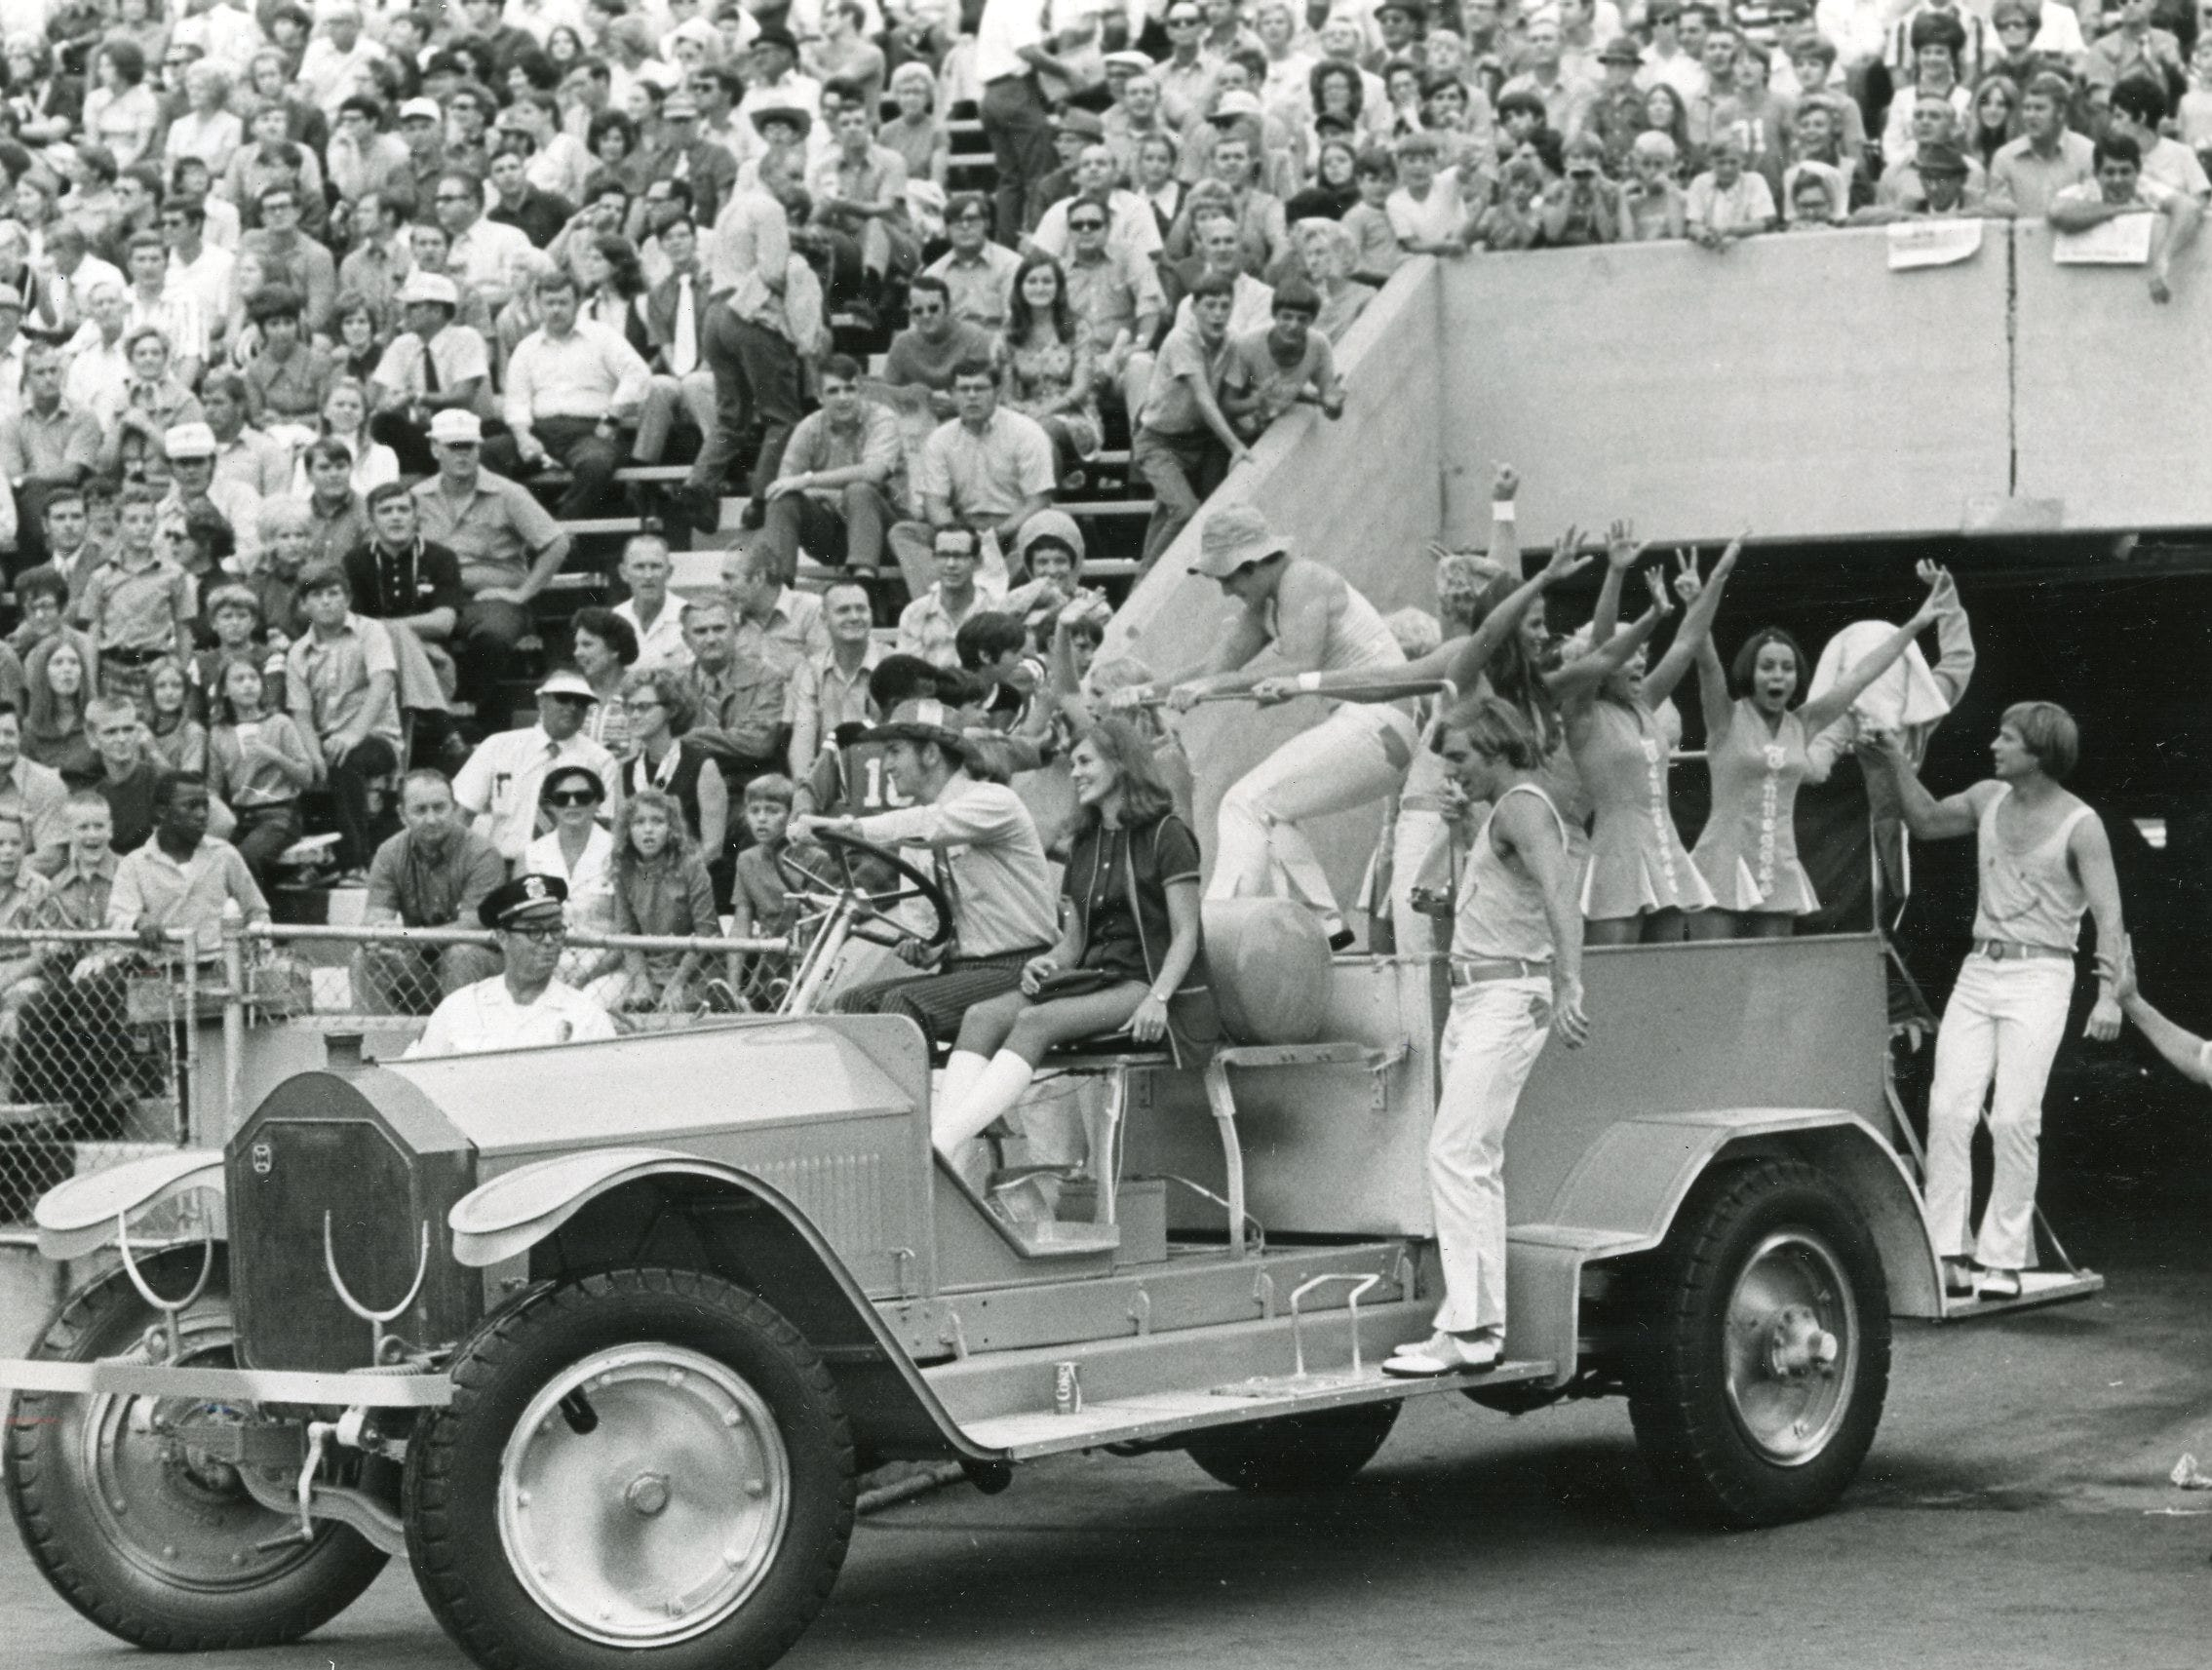 University of Tennessee cheerleaders arrive on the field in the Pi Kappa Alpha 1928 American La France Fire Truck, September, 1971.